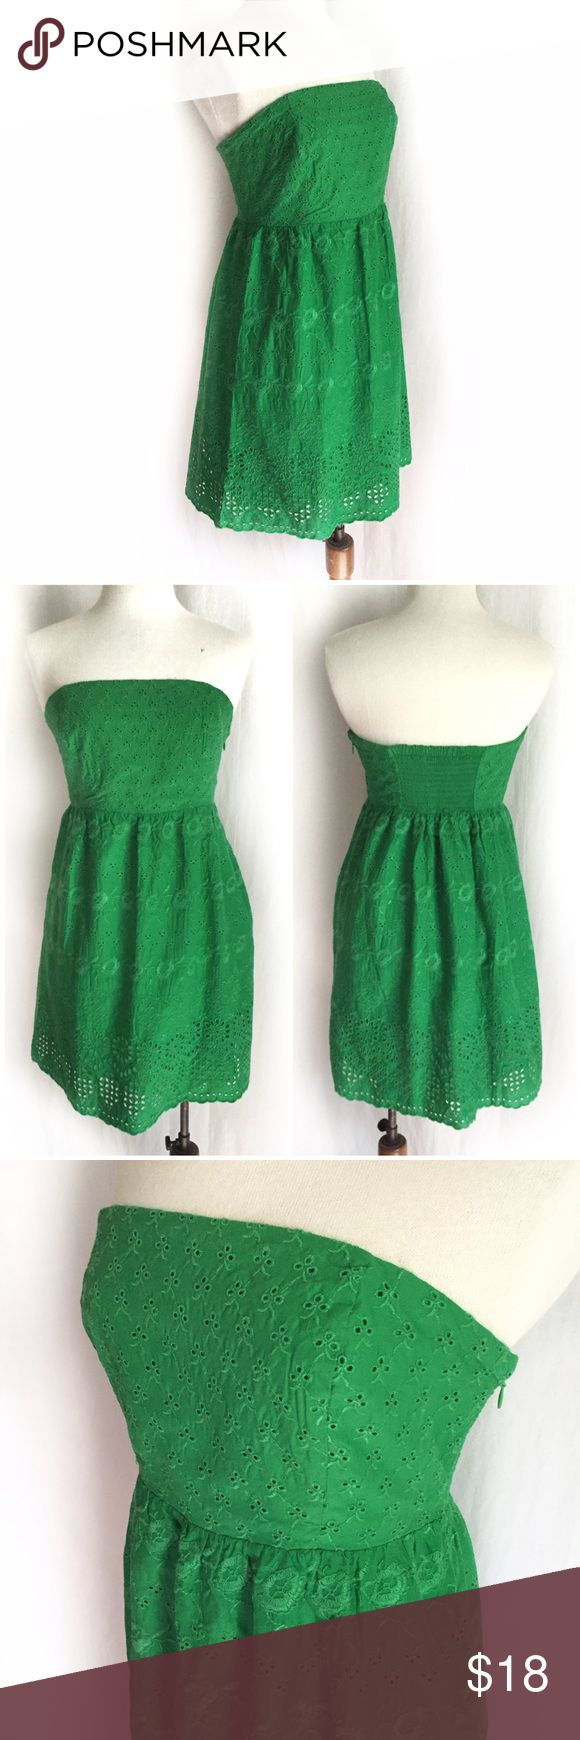 "Old Navy Eyelet Tube Dress Kelly green dress described by Old Navy as ""Tube top style bodice with smocked panel in back and empire waist. Embroidered flowers and eyelet accents. Hidden zipper along left side. Soft, lightweight cotton cambric, with voile lining. Adhesive gripper tape holds dress up. Slightly fitted through body. Dress hits above knee."" 100% cotton outer/lining. Machine wash. Size 6 Petite. Bust: 14.5"" flat across, unstretched. Waist: 13.5"" across. Length: 25"" from underarm to…"